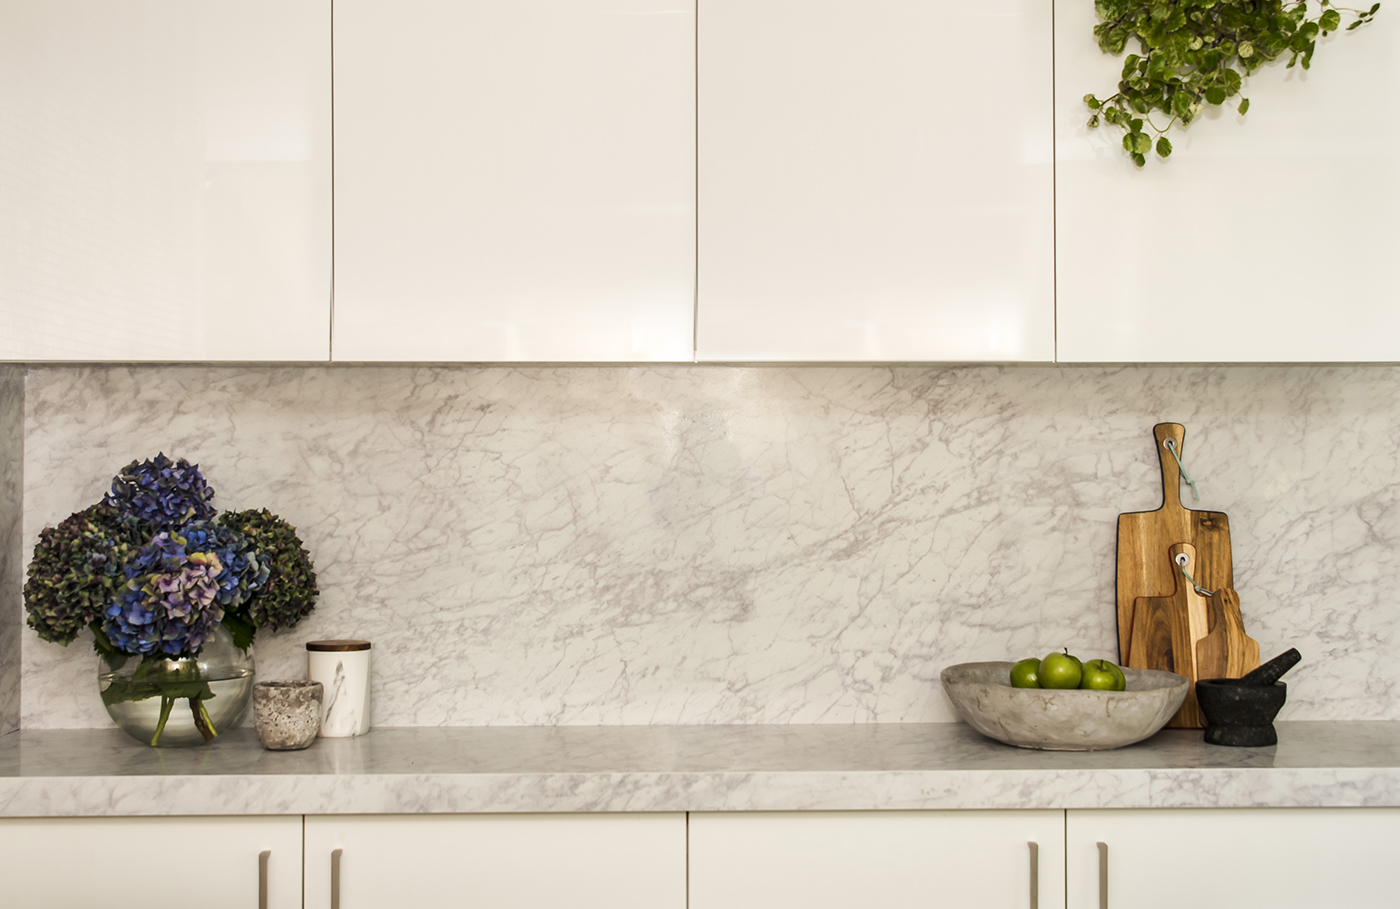 beautiful counter and cabinets